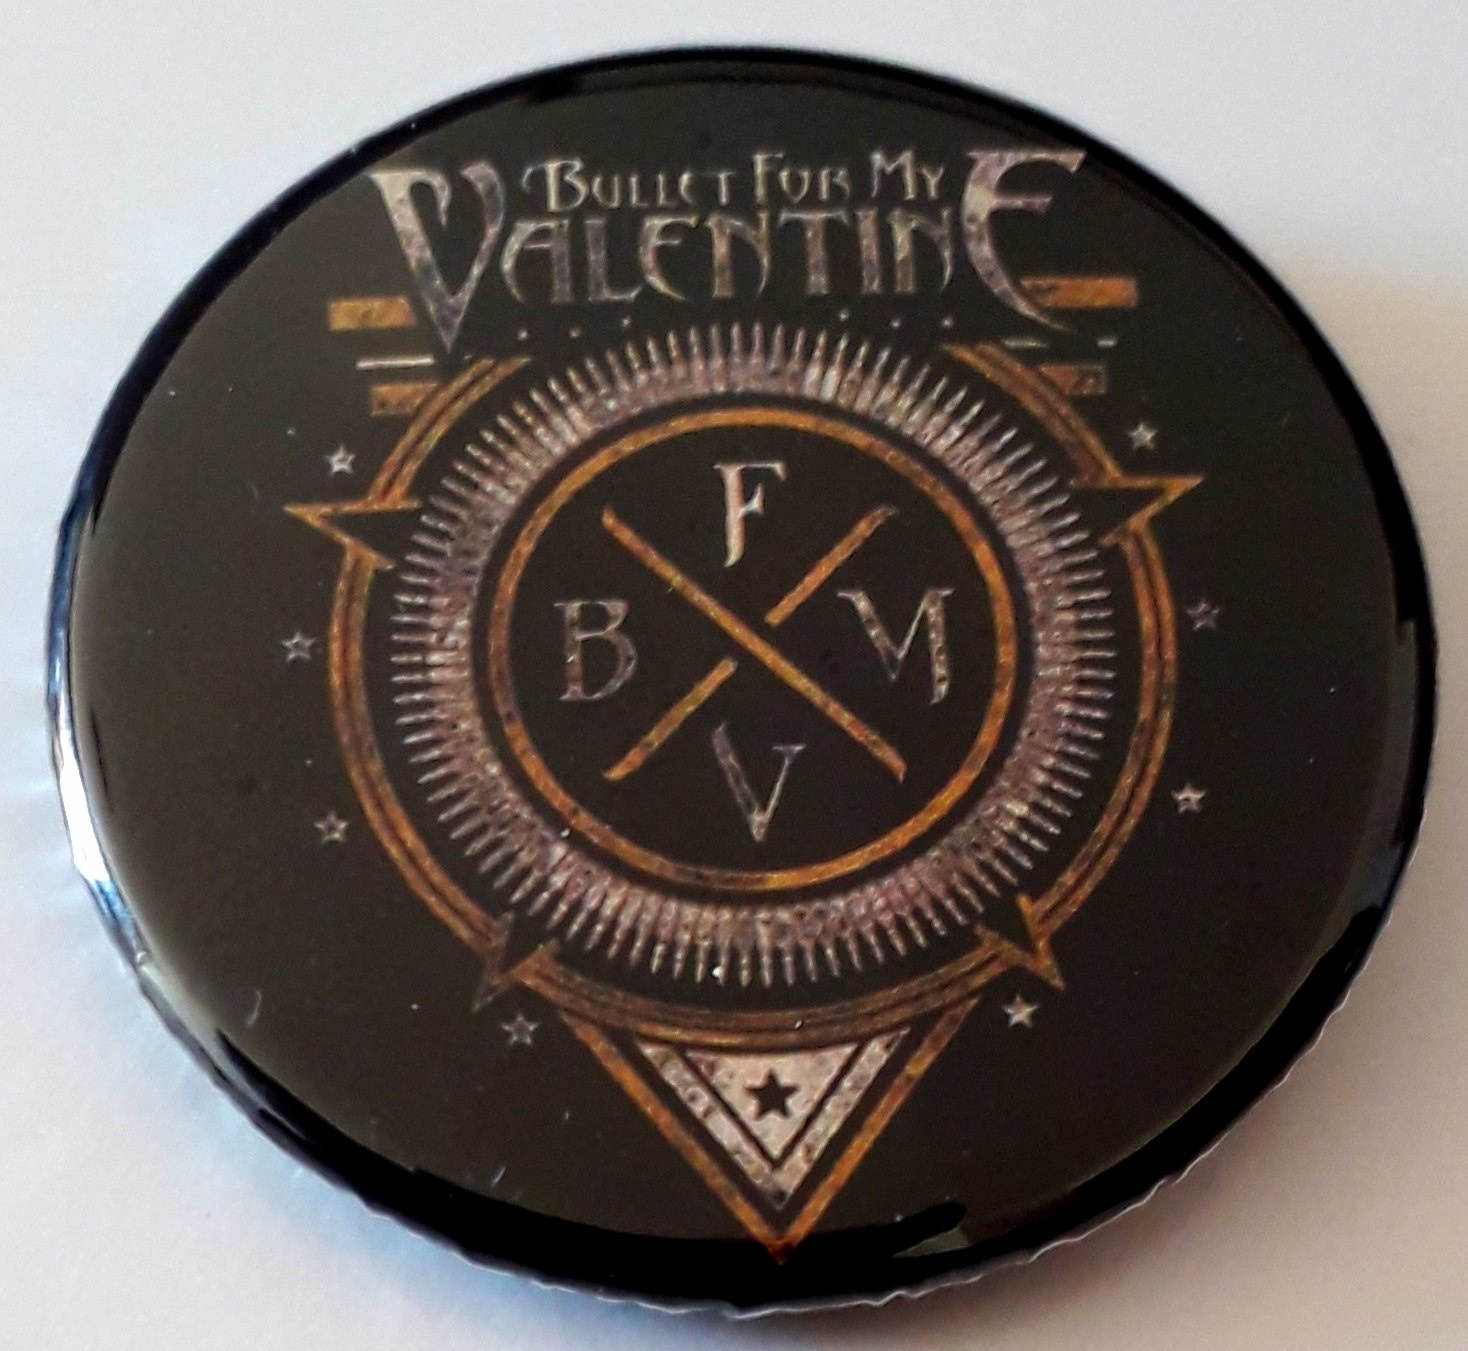 Botton Bullet for my Valentine